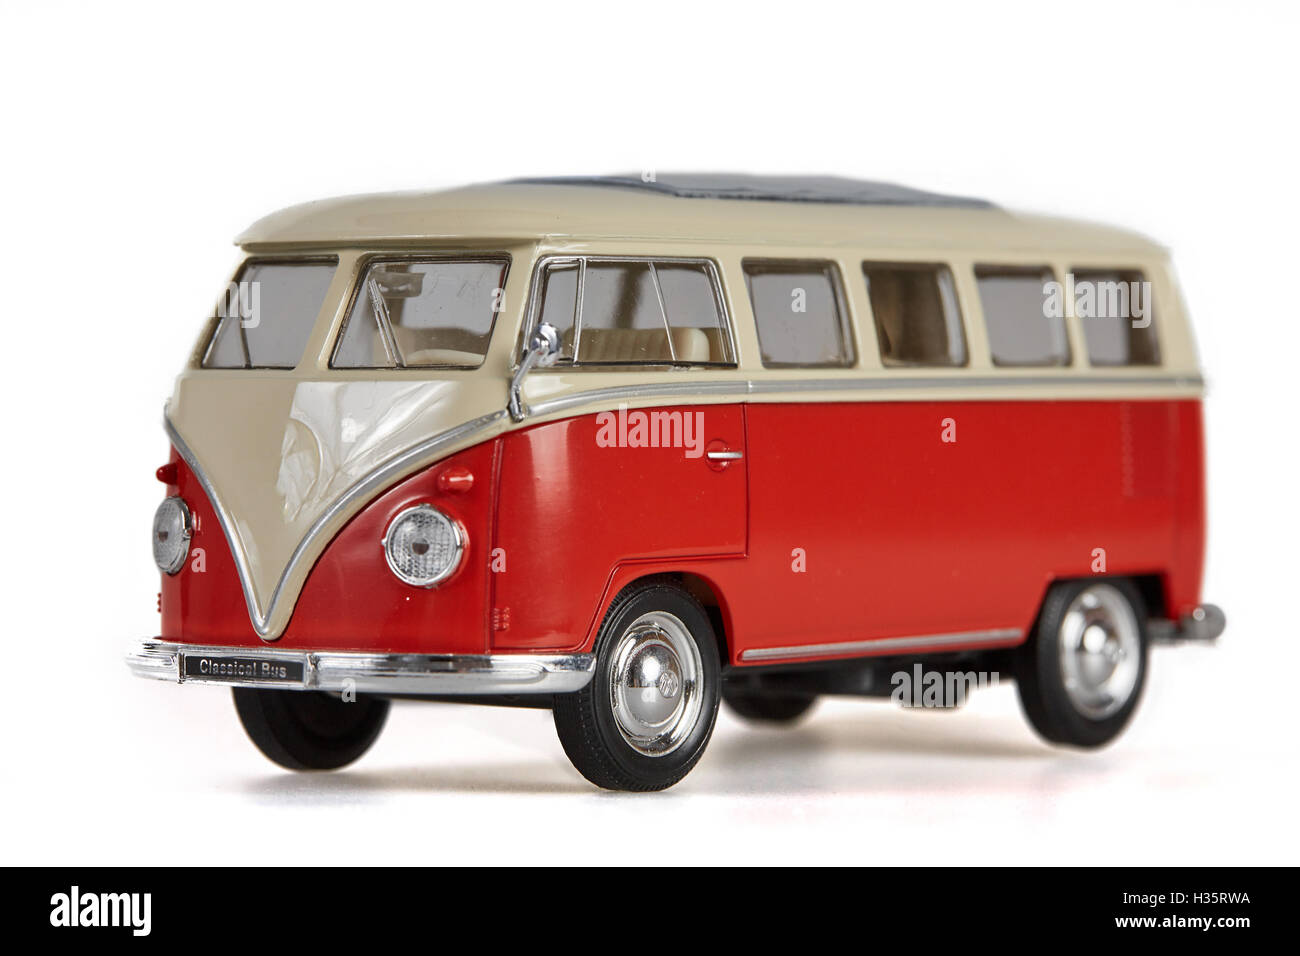 Isolated red vw bus van on white background - Stock Image